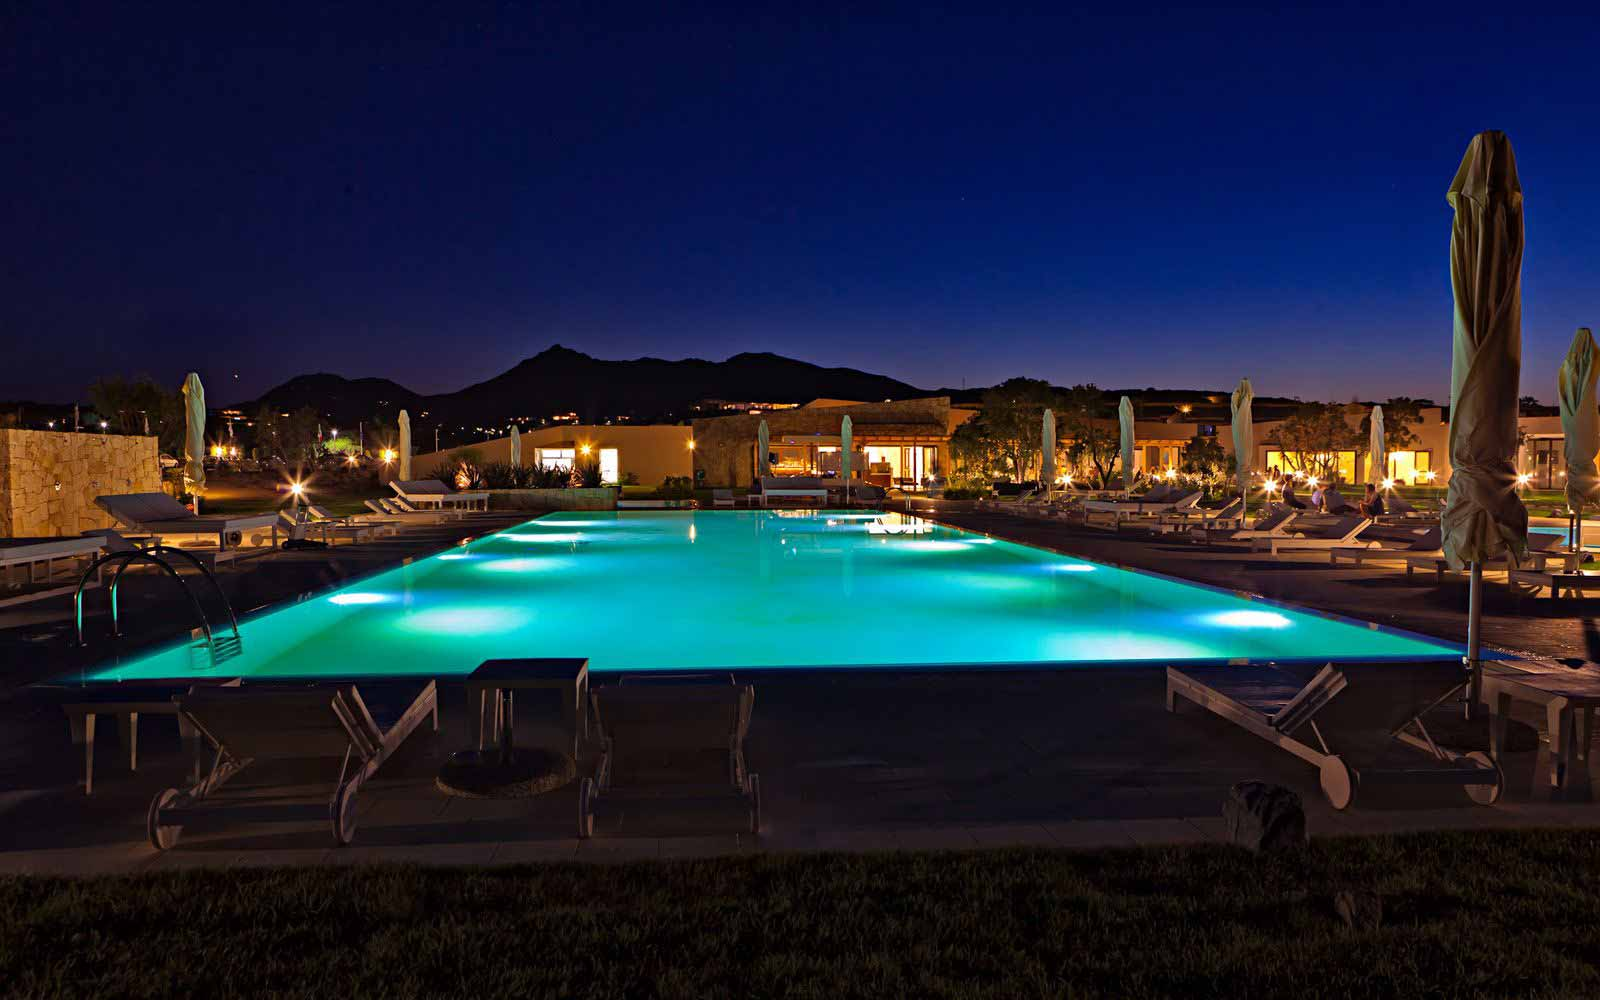 Pool by night at Paradise Resort